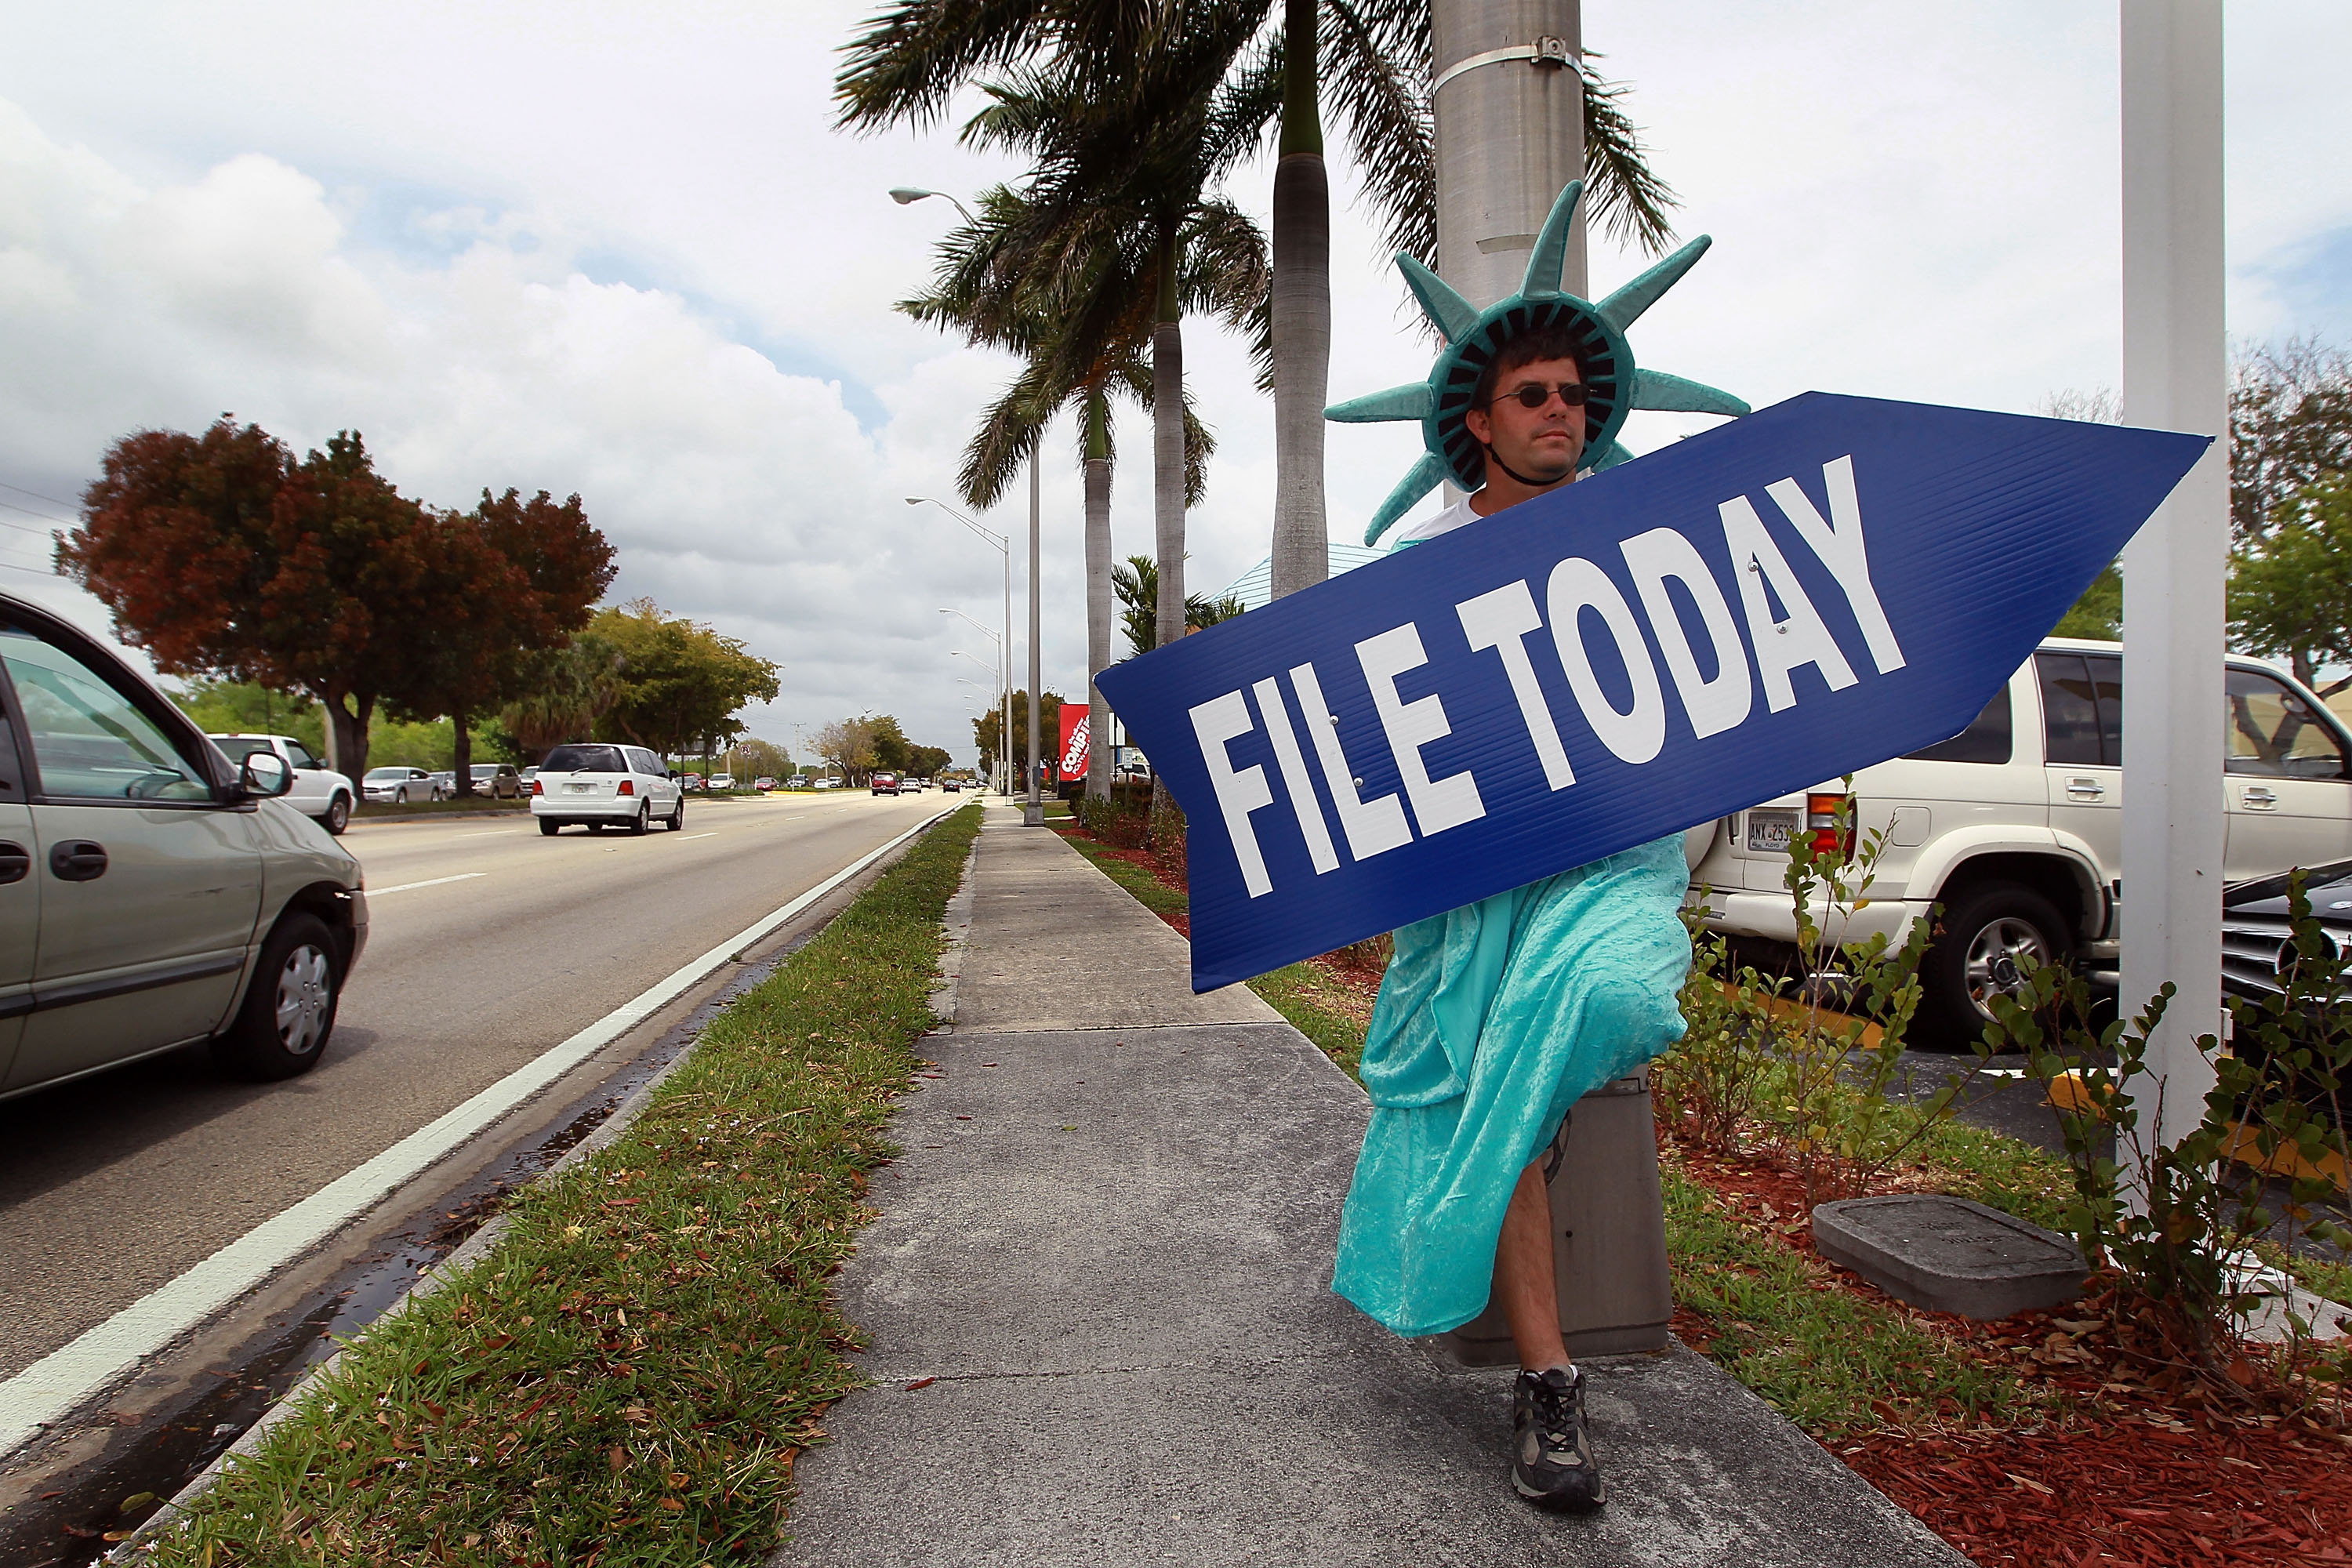 There are many free resources for tax filers. (Joe Raedle/Getty Images)